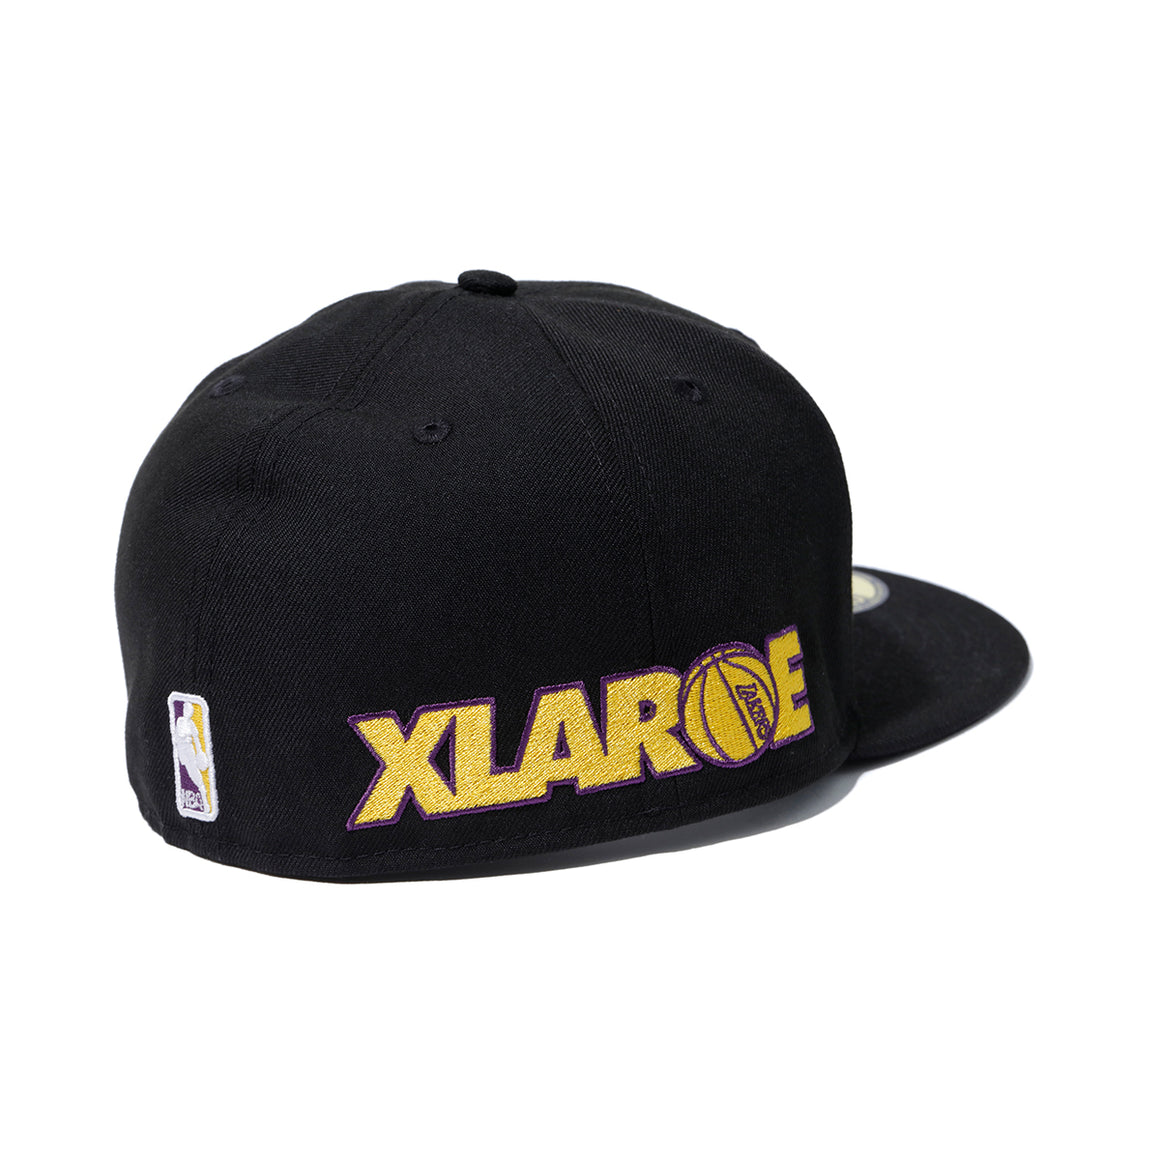 XLarge x New Era x NBA 5950 LA Lakers Cap, Accessories  - XLarge Brand